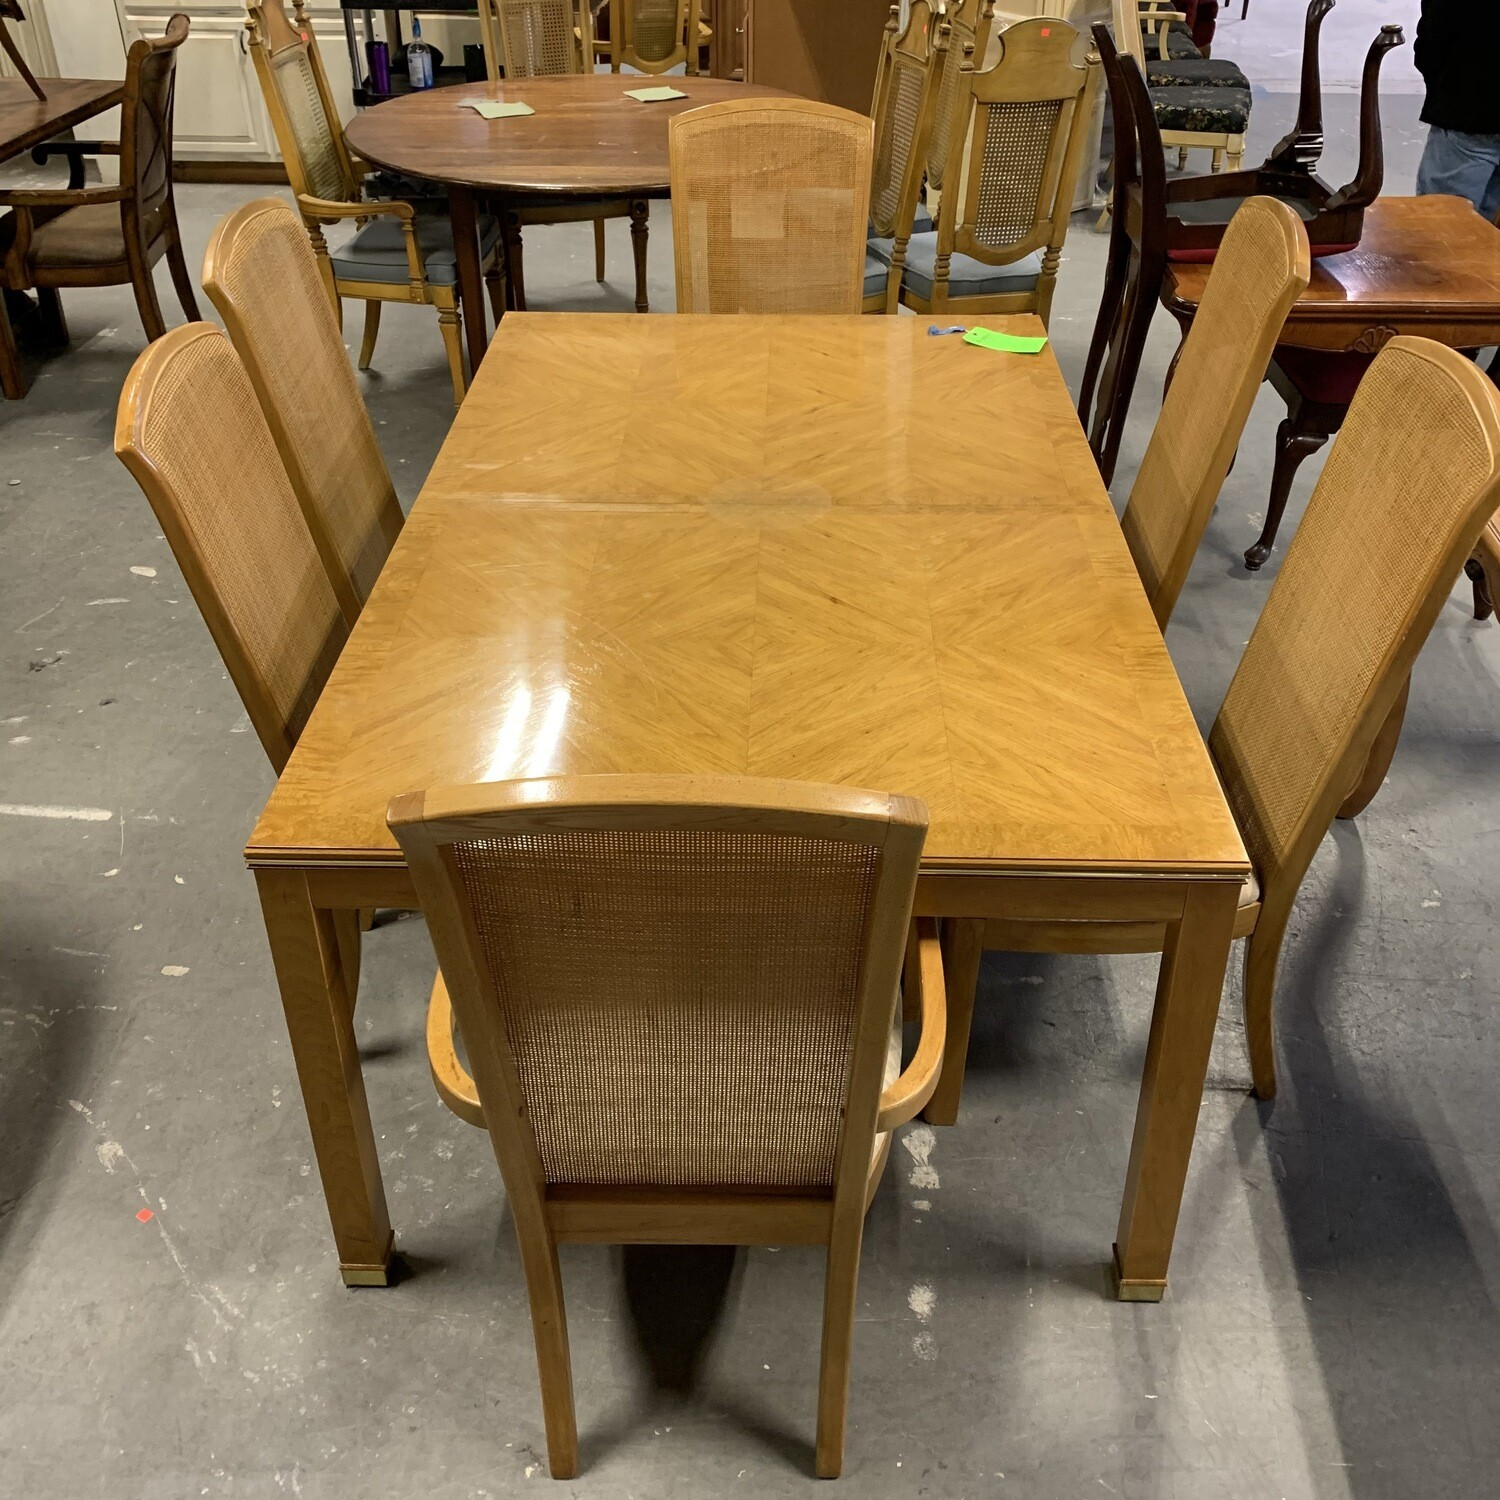 Dining Table & 6 Chairs Light Wood